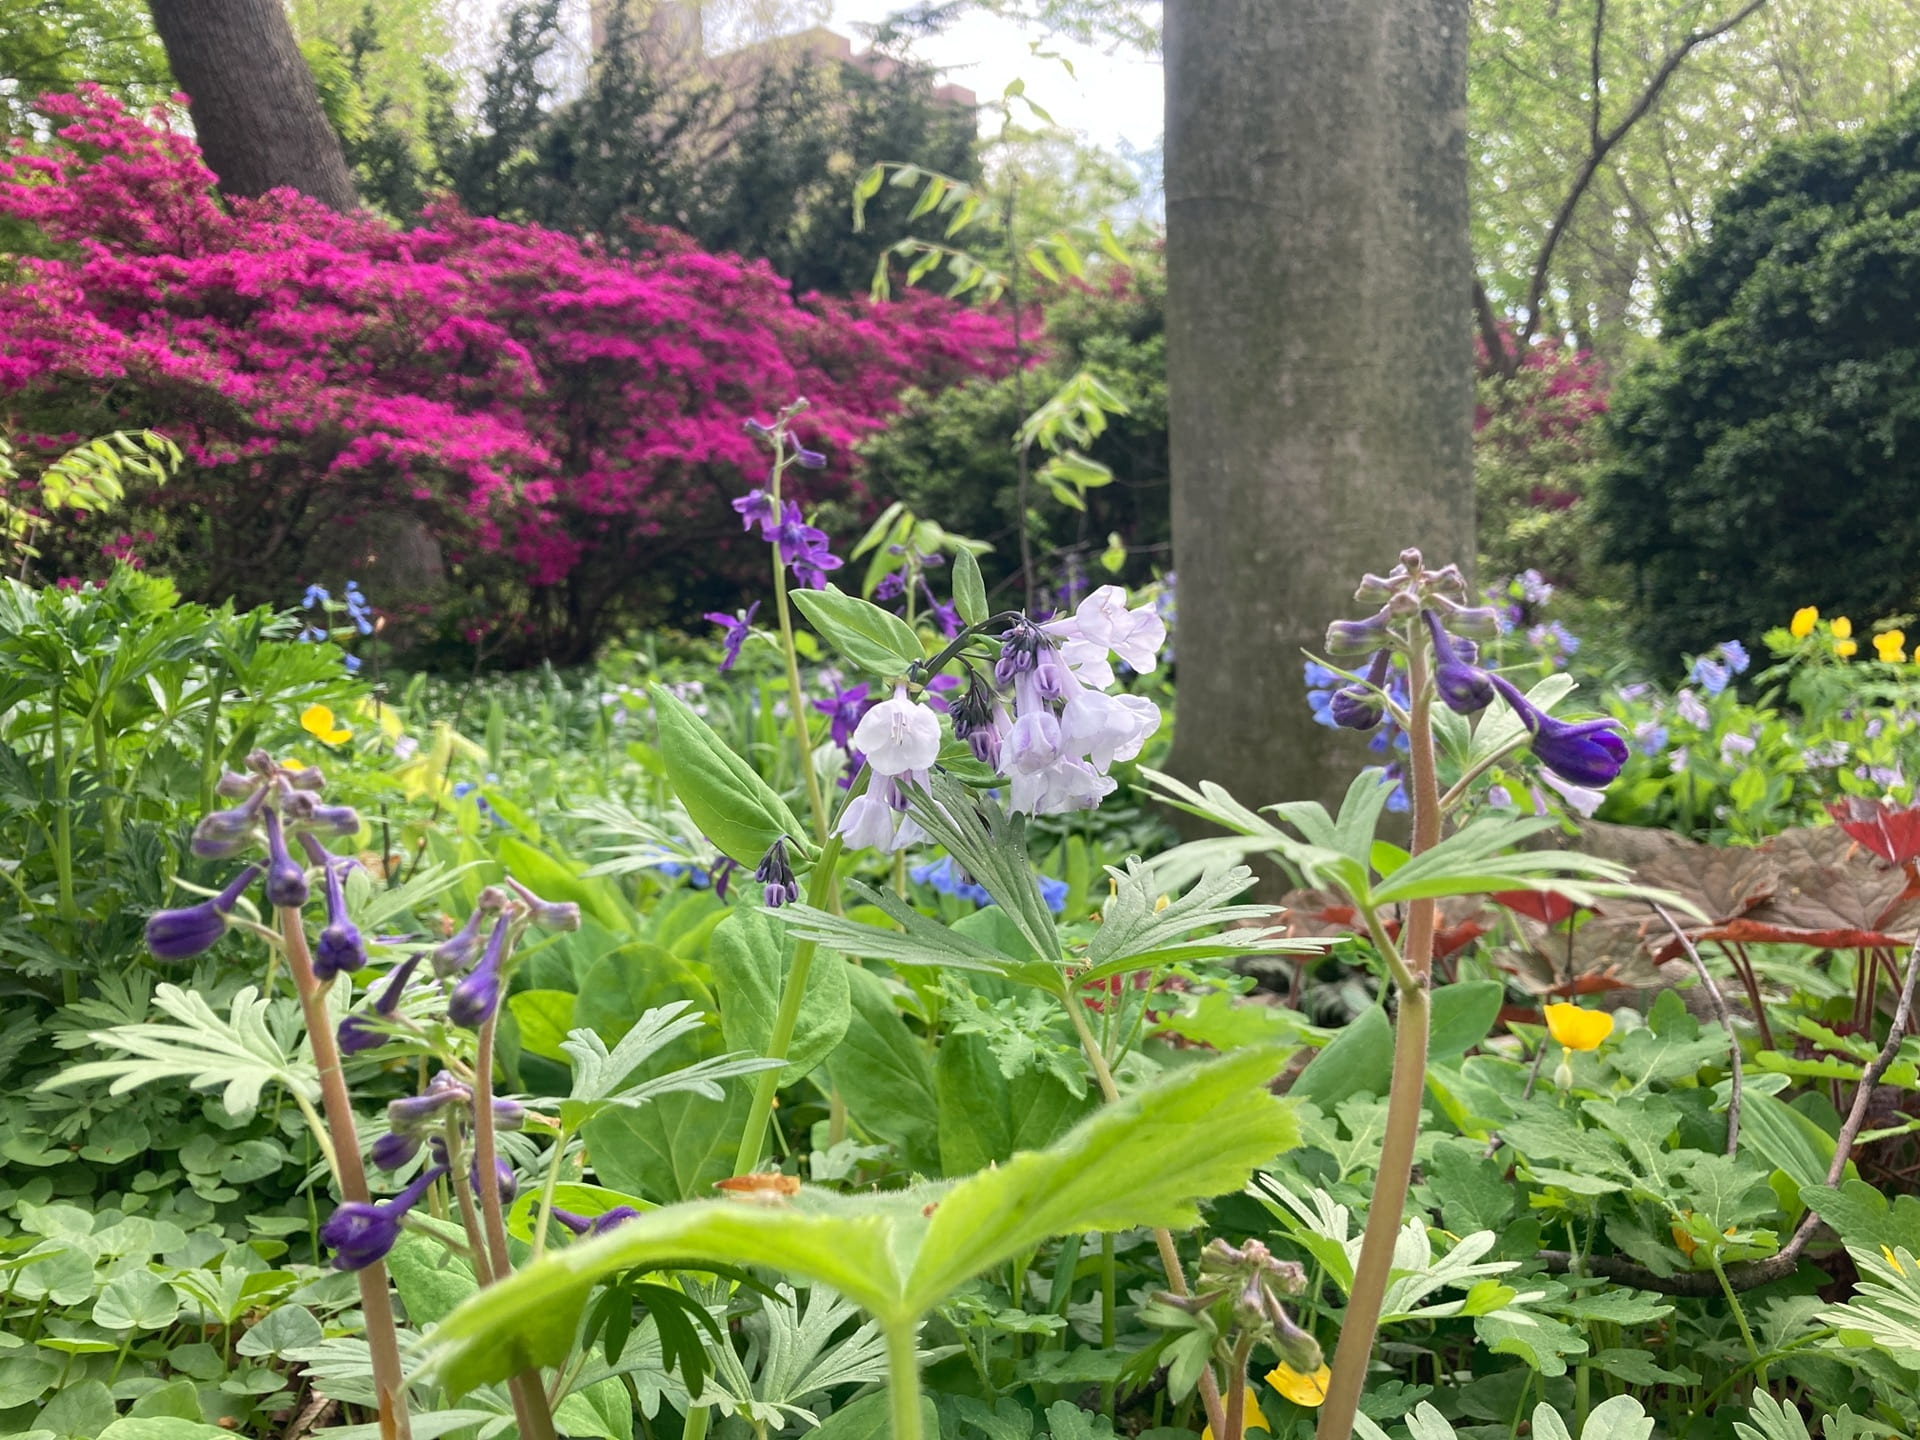 A mixture of native spring blooming plants, Delphinium tricorne, Mertensia virginica, and Stylophorum diphyllum, amongst a backdrop of azaleas.